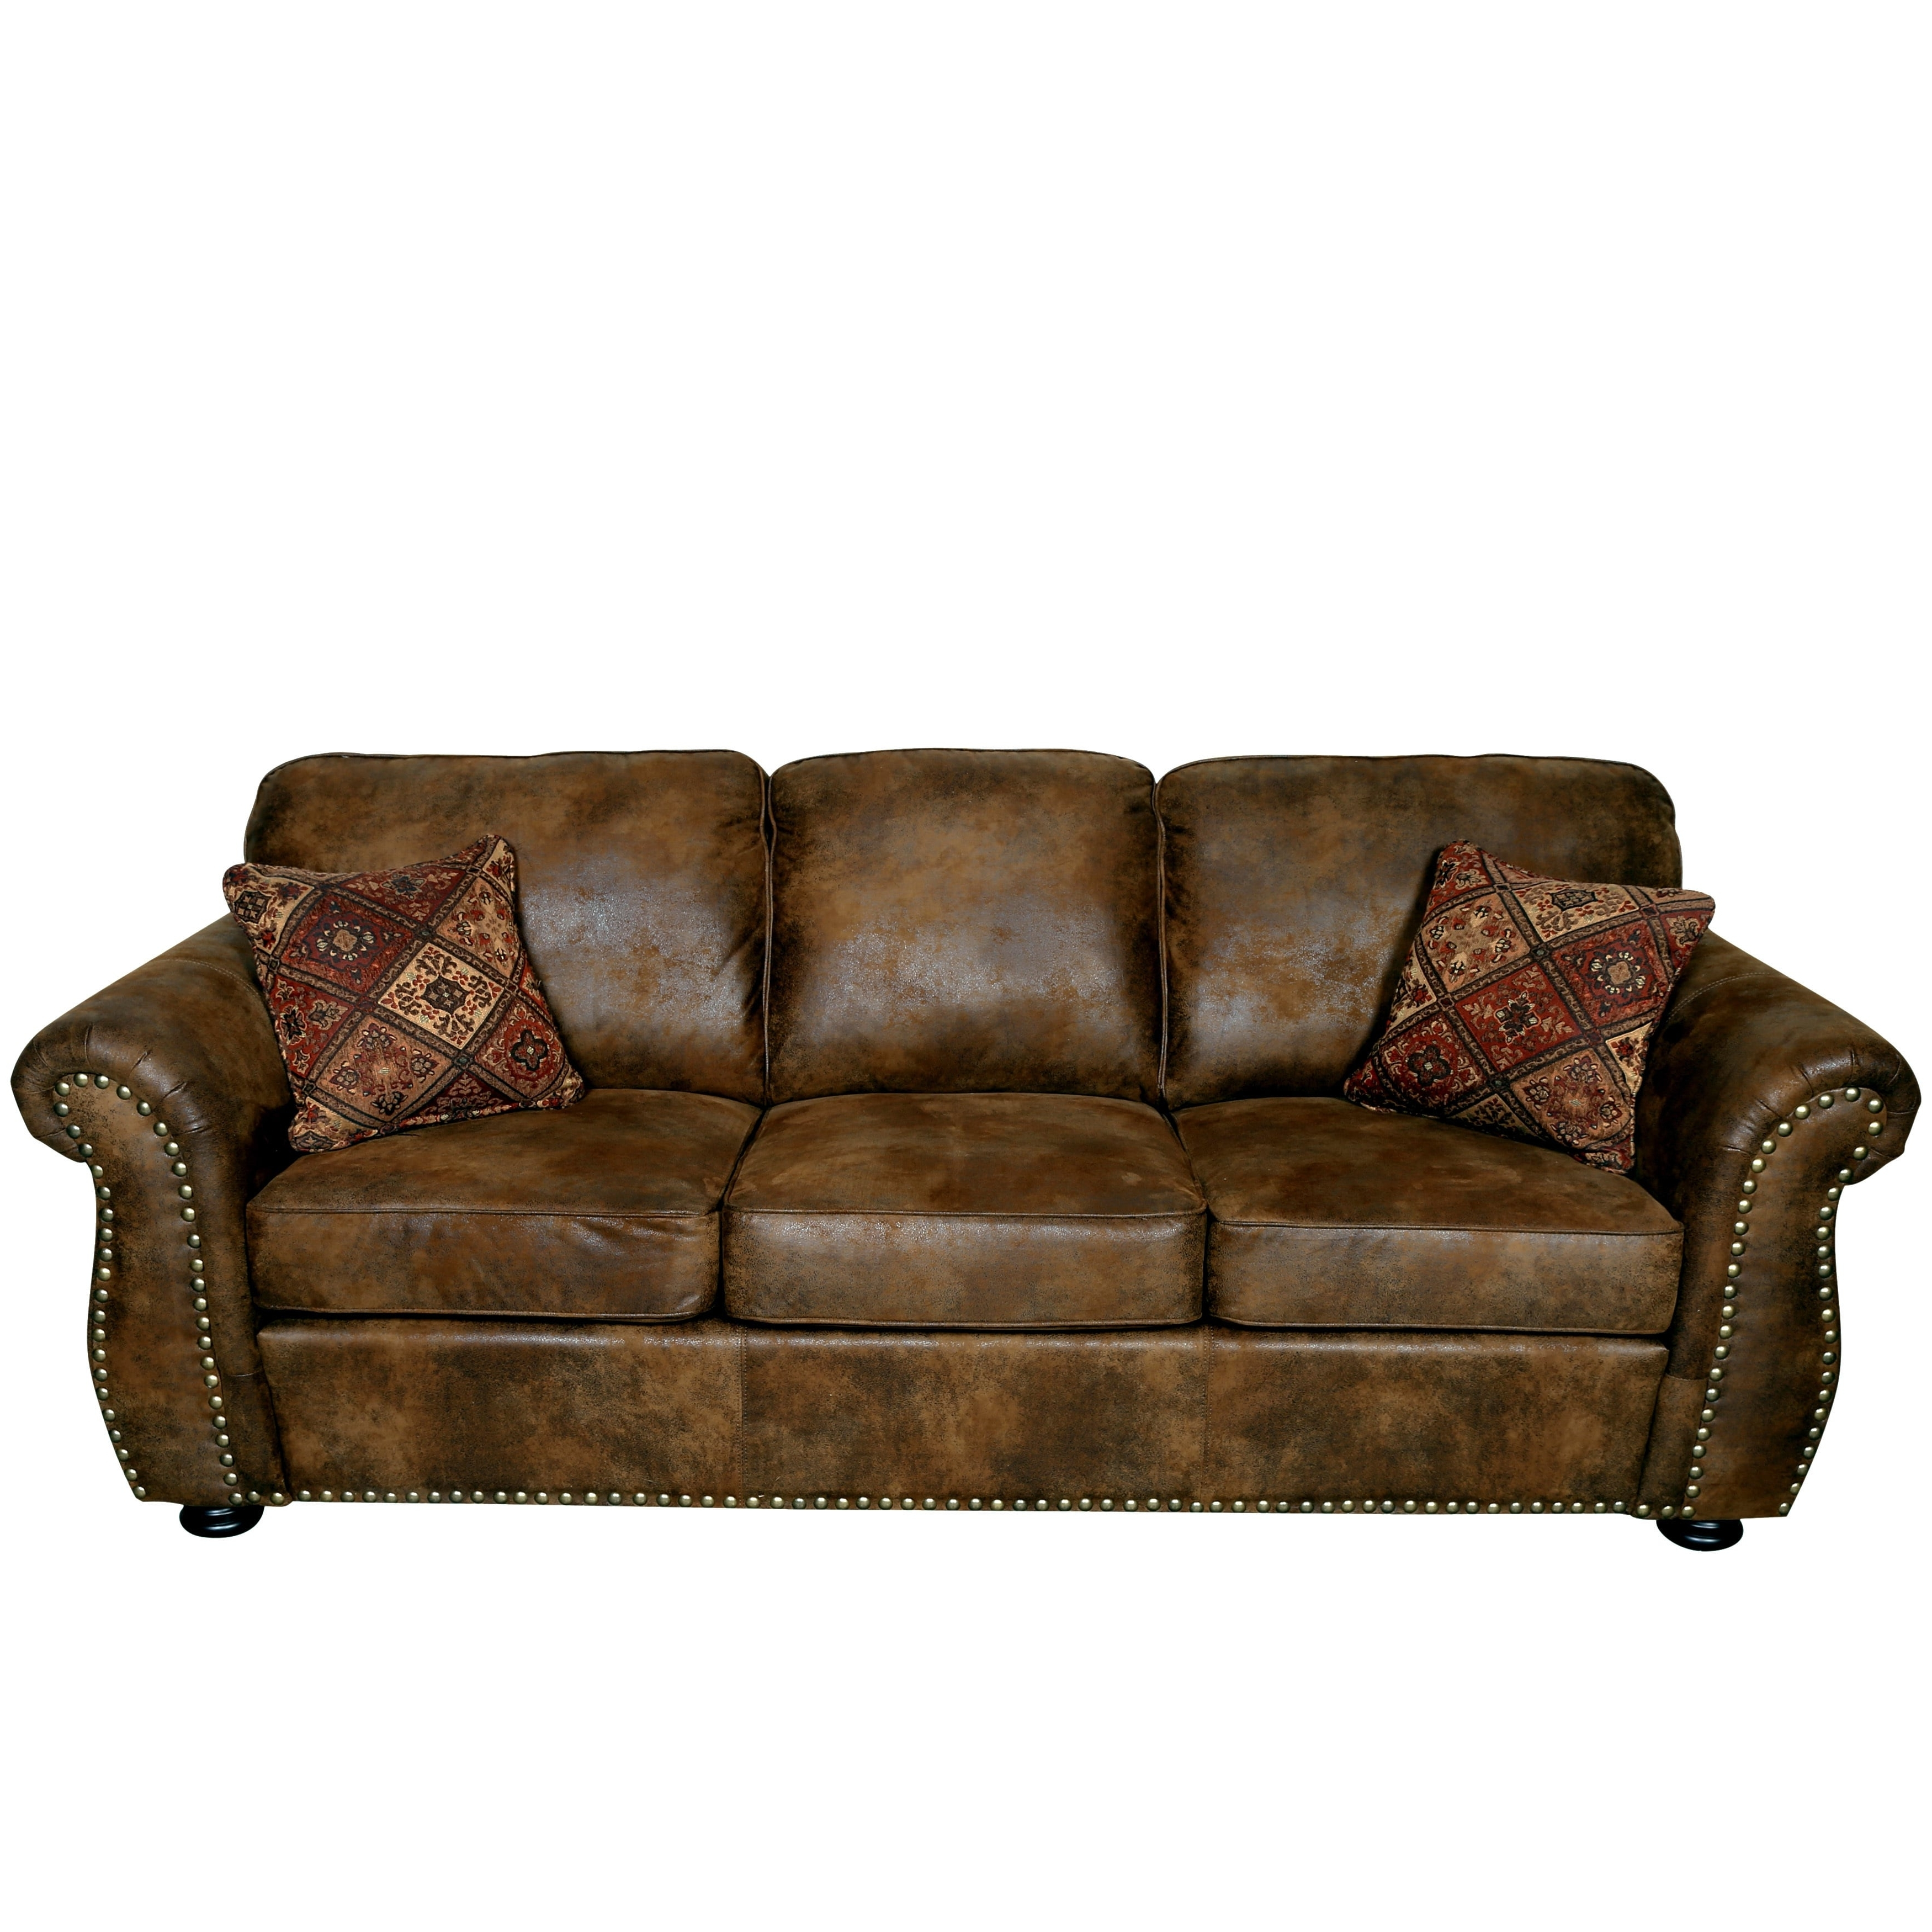 Well Known Porter Elk River Brown Microfiber Faux Suede Leather Sofa With 2 Regarding Faux Suede Sofas (View 4 of 15)